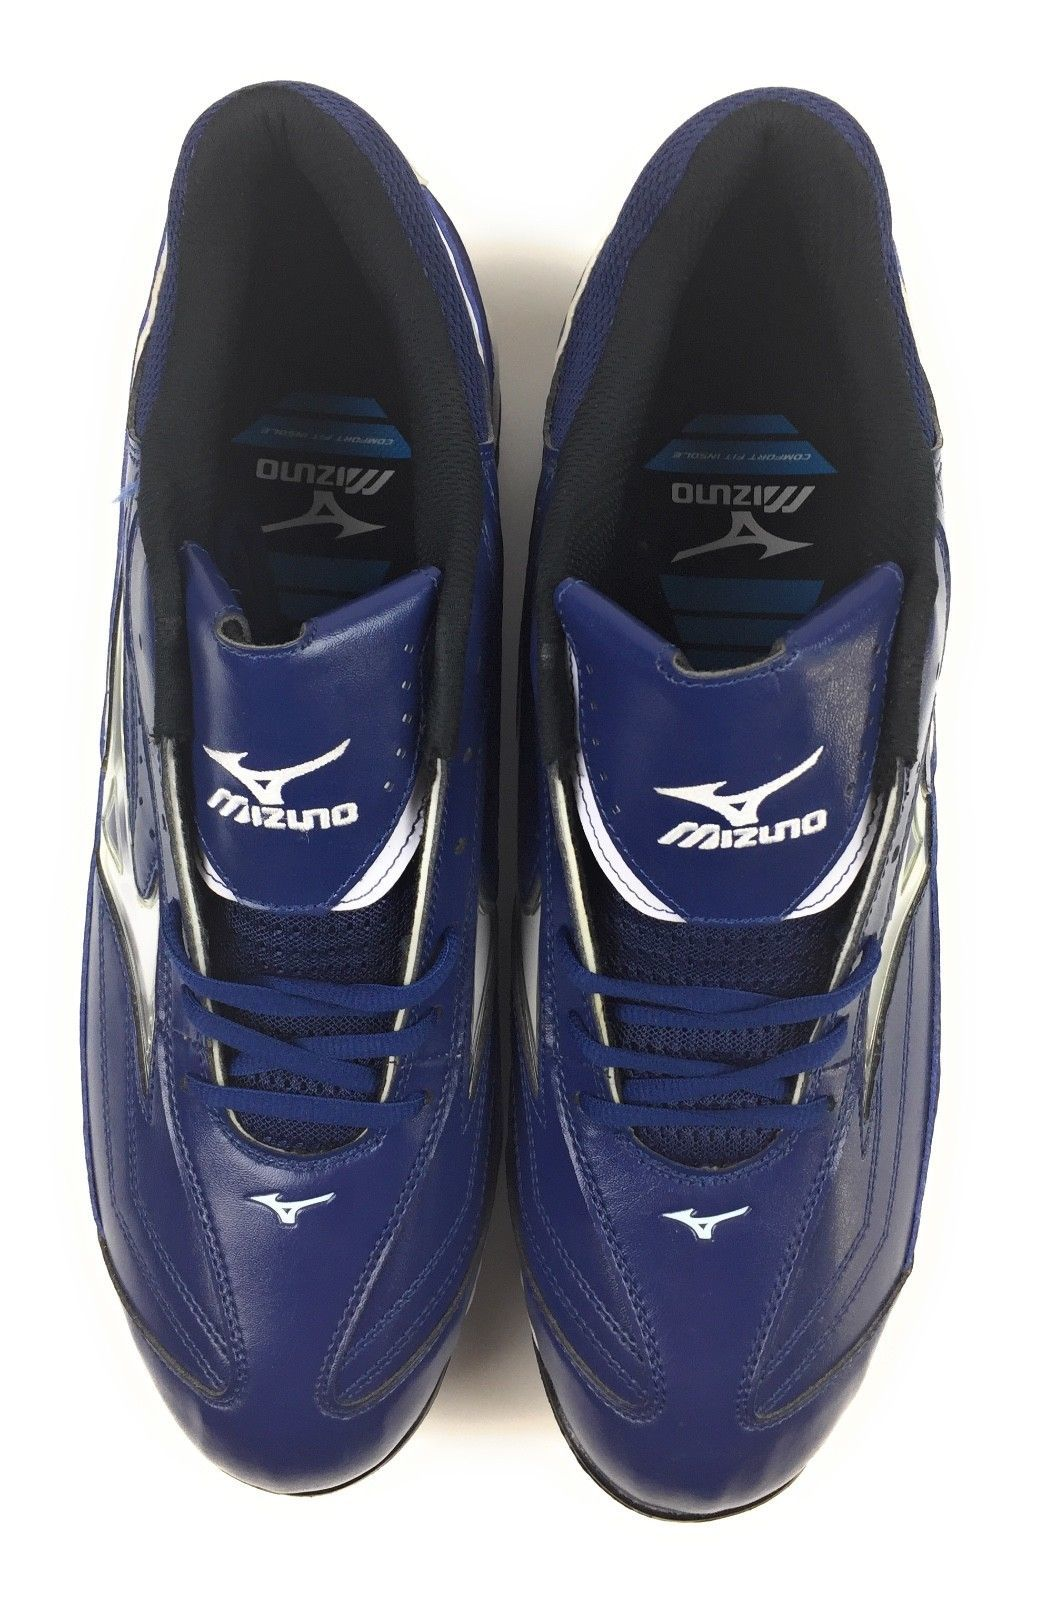 Mizuno 9 Spike Classic G6 Low Switch Metal Baseball Cleats Blue Men's 15 US